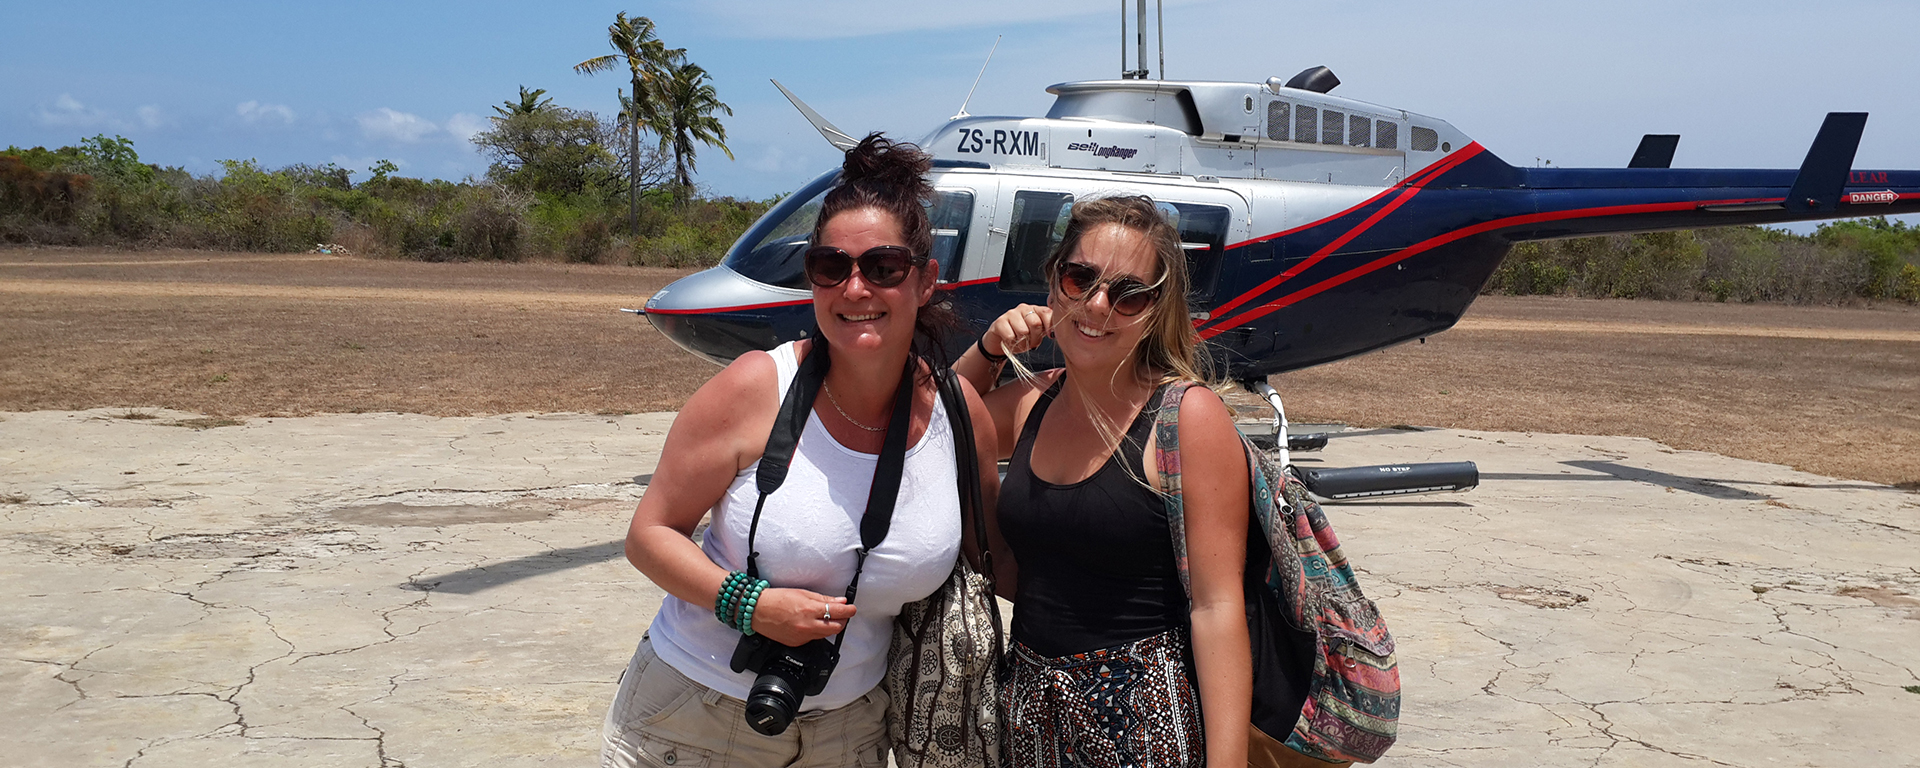 Azura Quilelea is on a private island in the Quirimbas and, as Lauren and Tatham found out, the only way to get there is by helicopter!